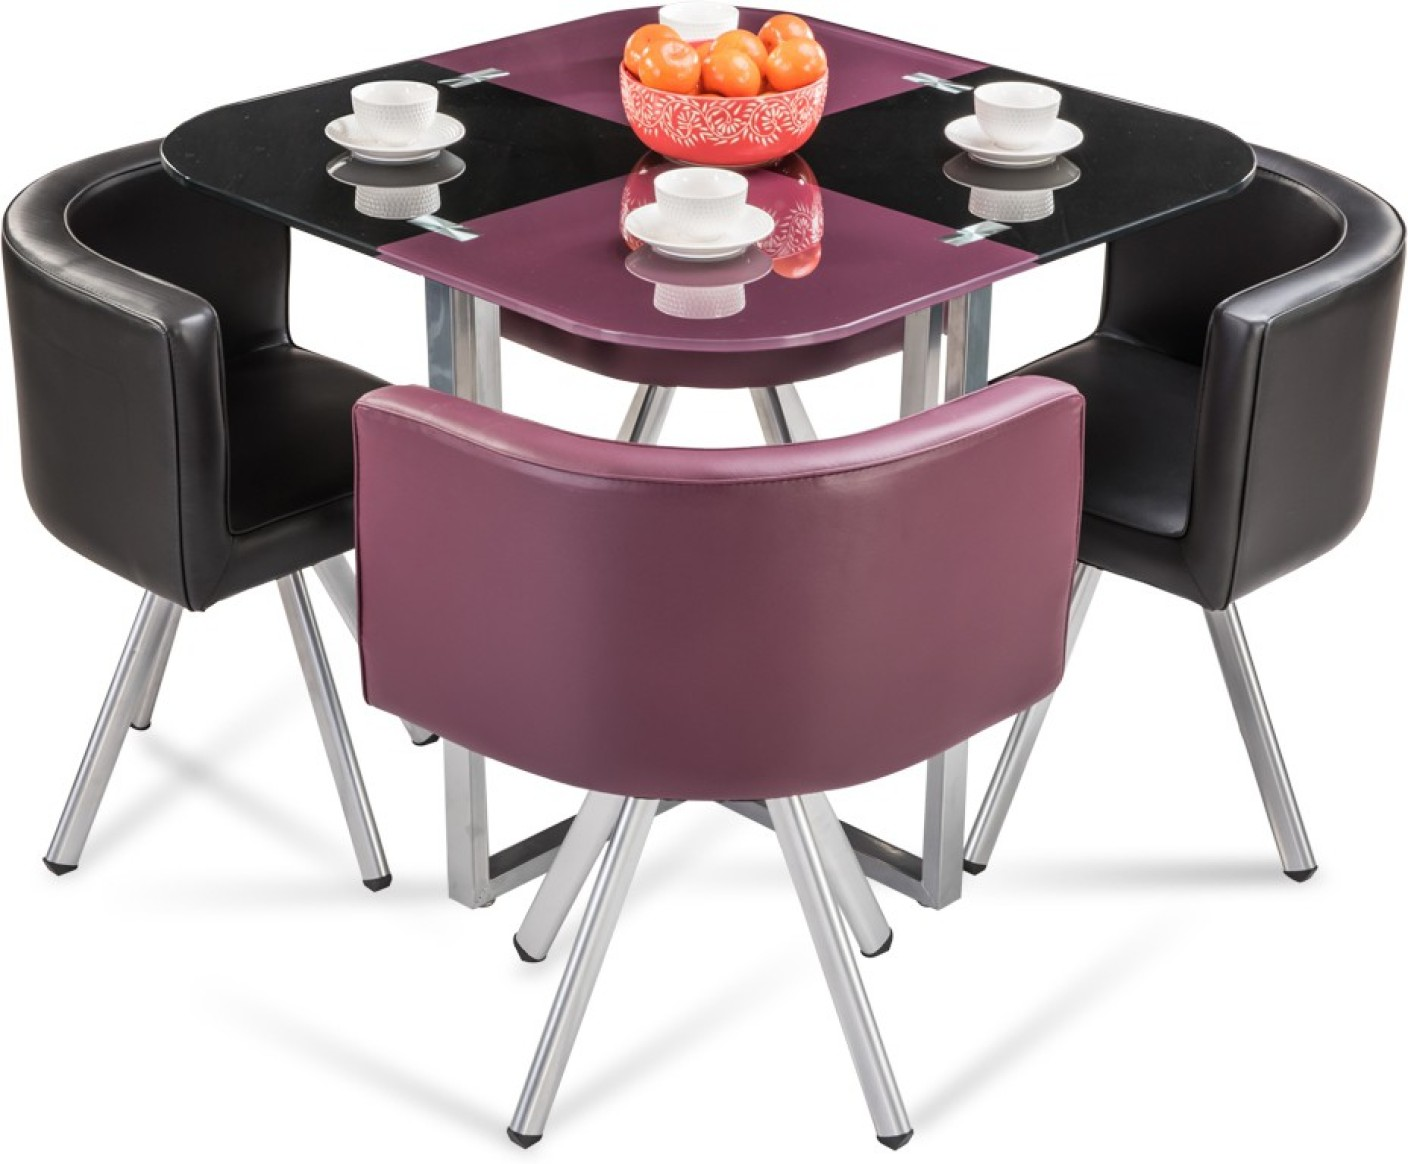 Durian Neon Glass 4 Seater Dining Set Price In India Buy